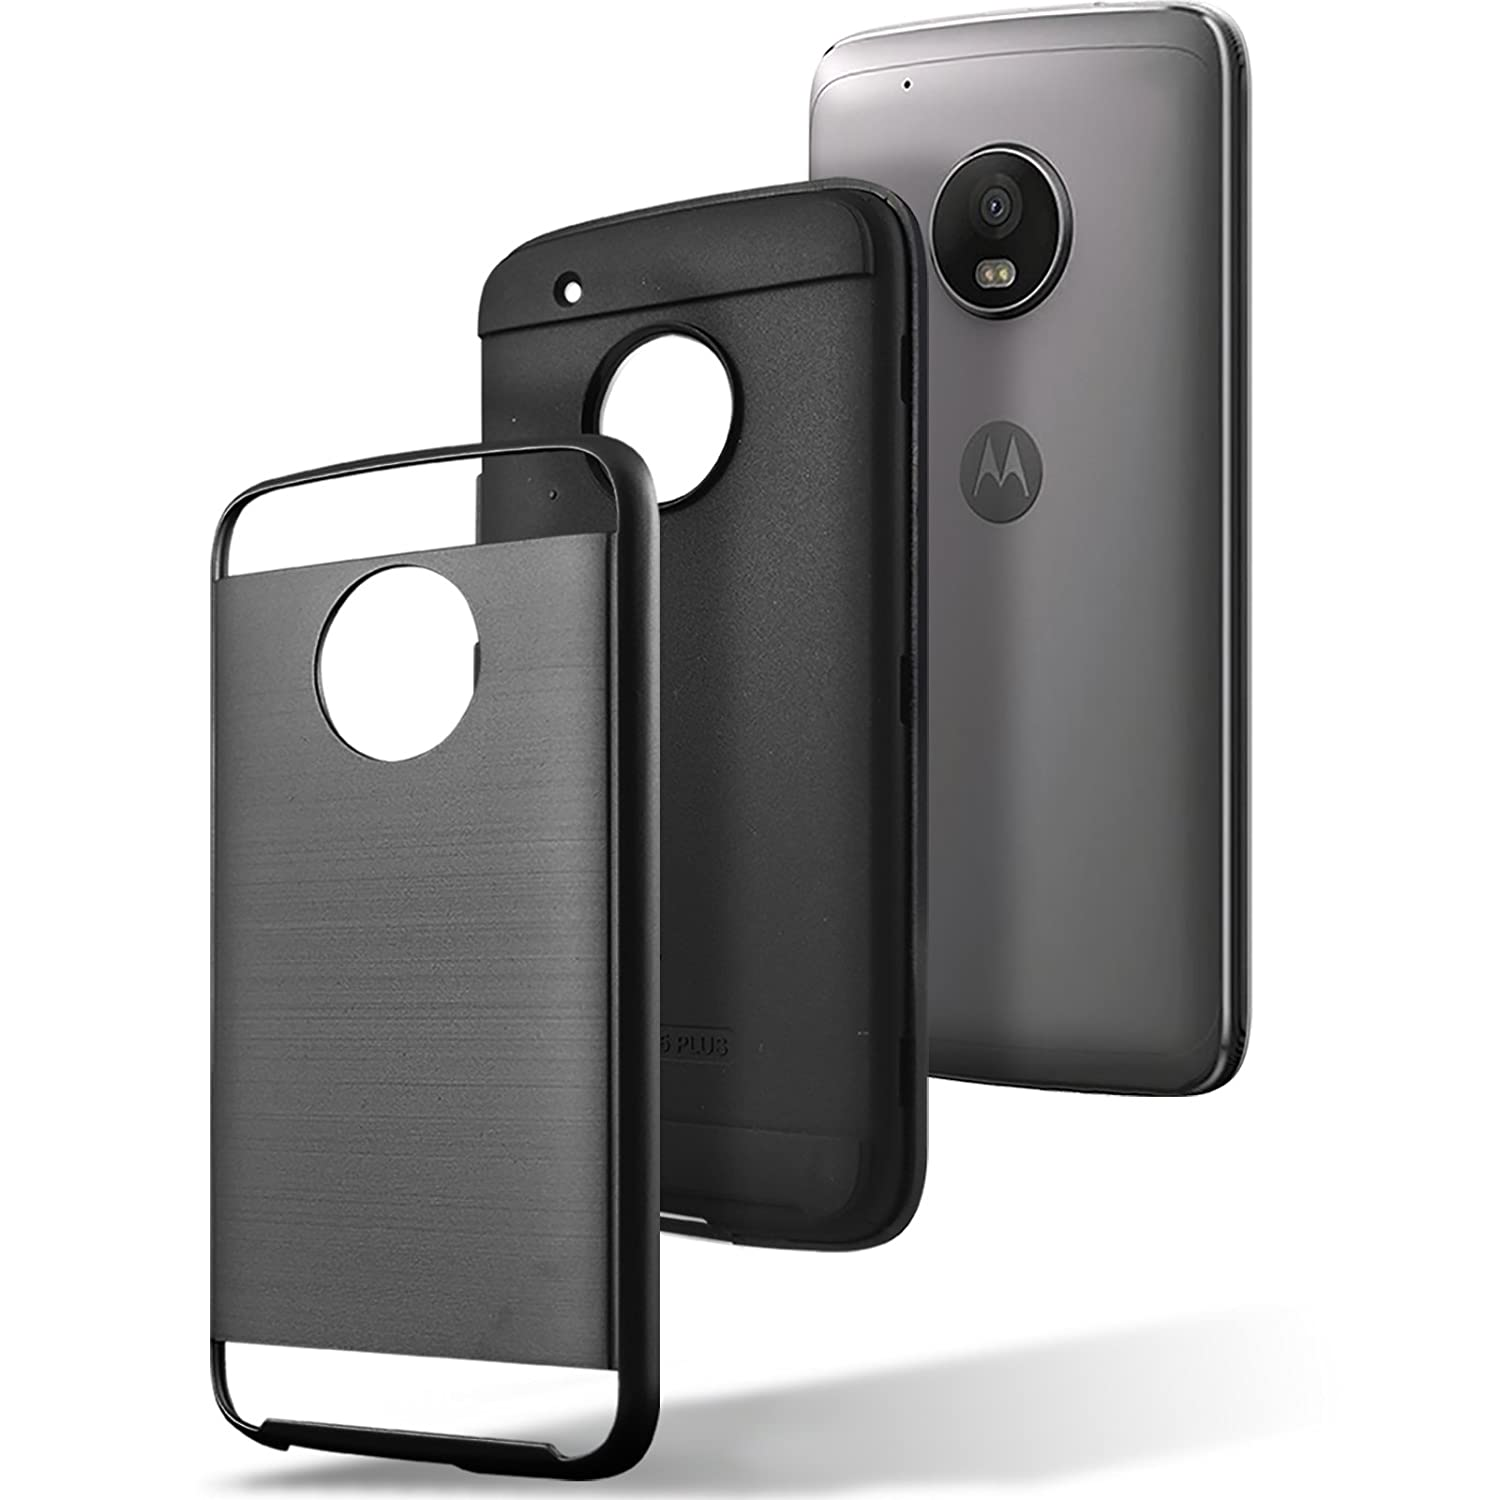 Circlemalls Moto E4 Plus Case 2 Piece Style Hybrid Hardcase Anti Shock Caseology Vanvo Iphone 6 Black Shockproof With Hd Screen Protector And Touch Pen Electronics